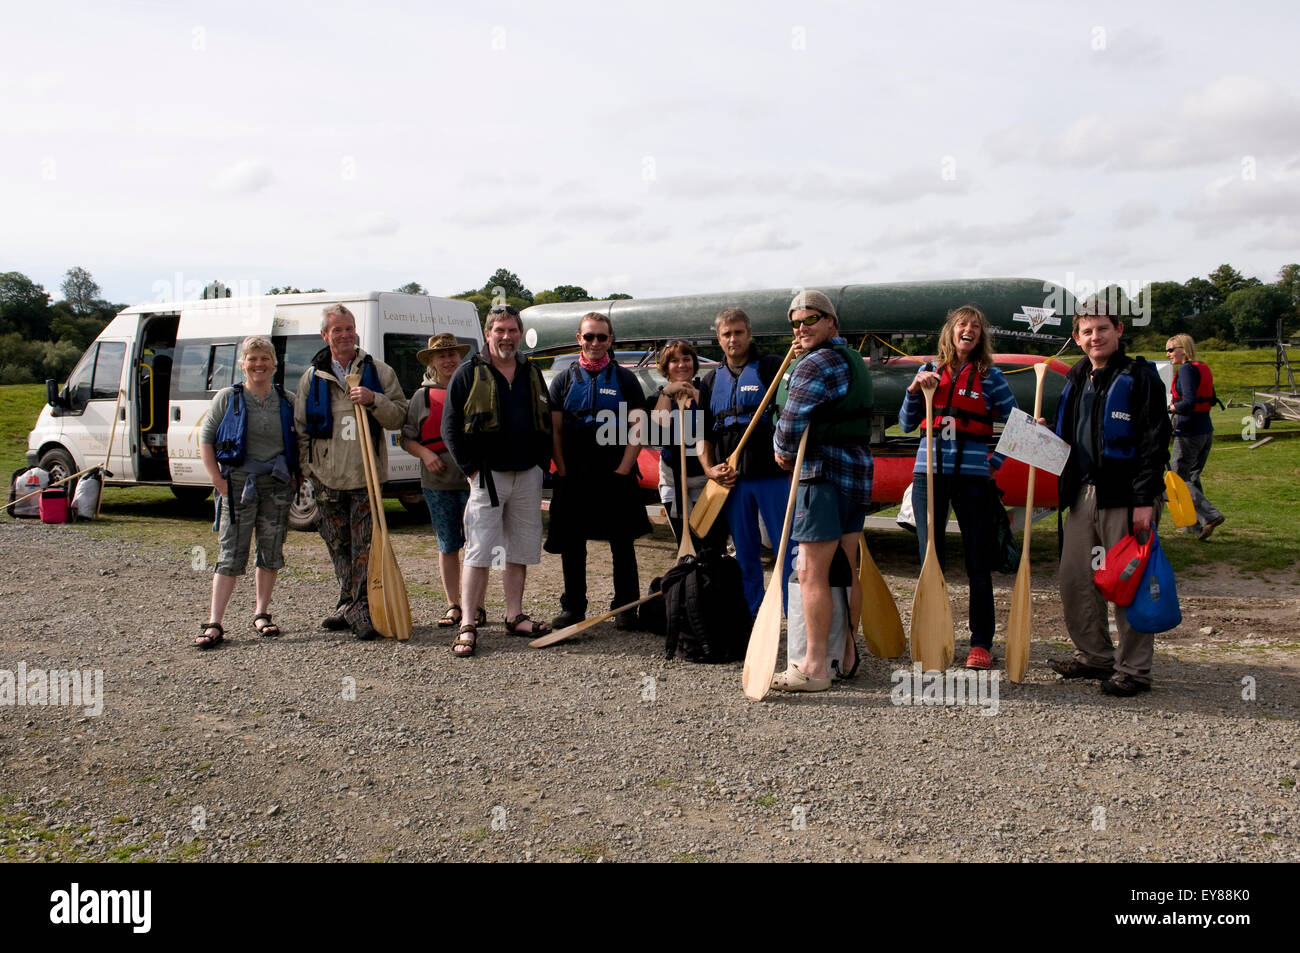 Group of people about to go canoeing, posing for a photograph - Stock Image